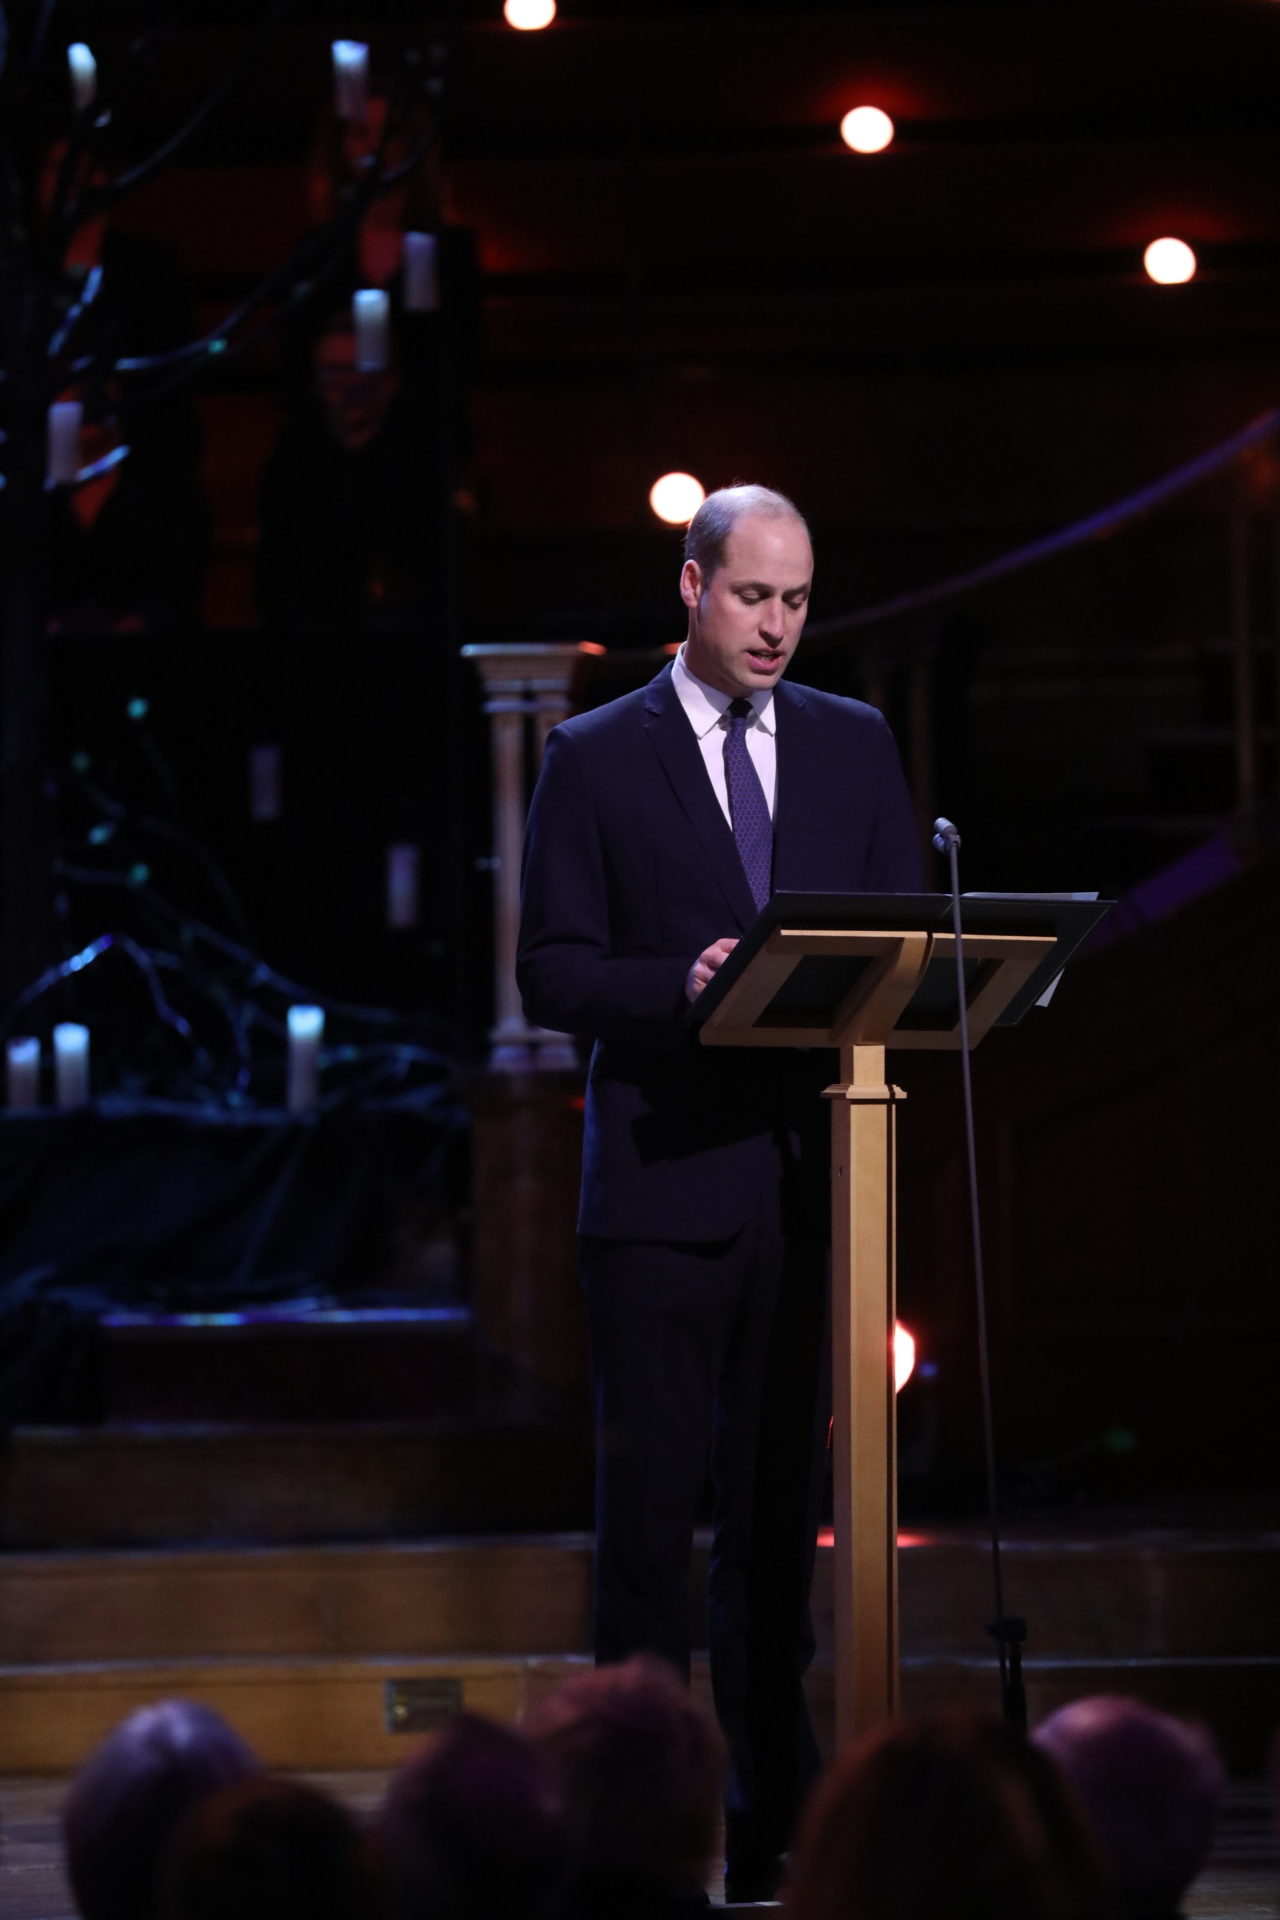 HRH The Duke of Cambridge reads an excerpt from a letter about Princess Alice, written by Demosthene Pouris to Yad Vashem in August 1992